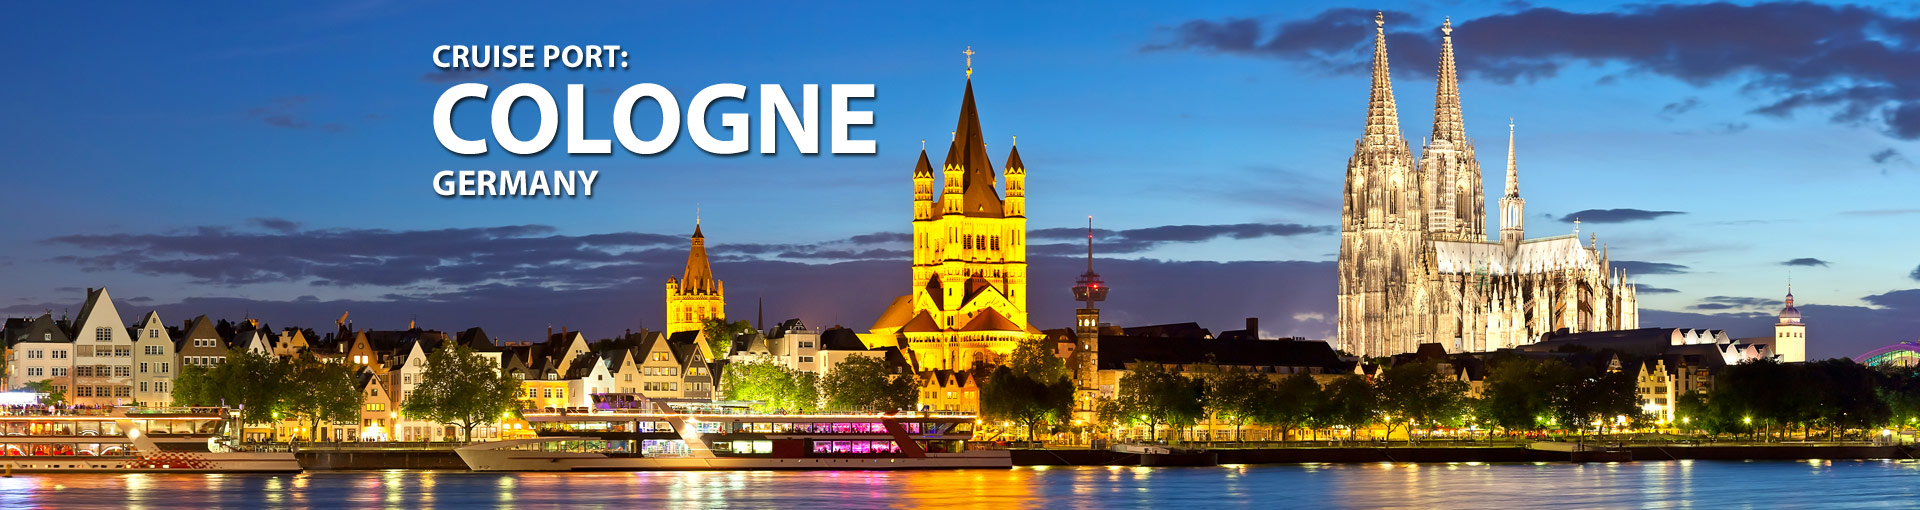 Cruises from Cologne, Germany